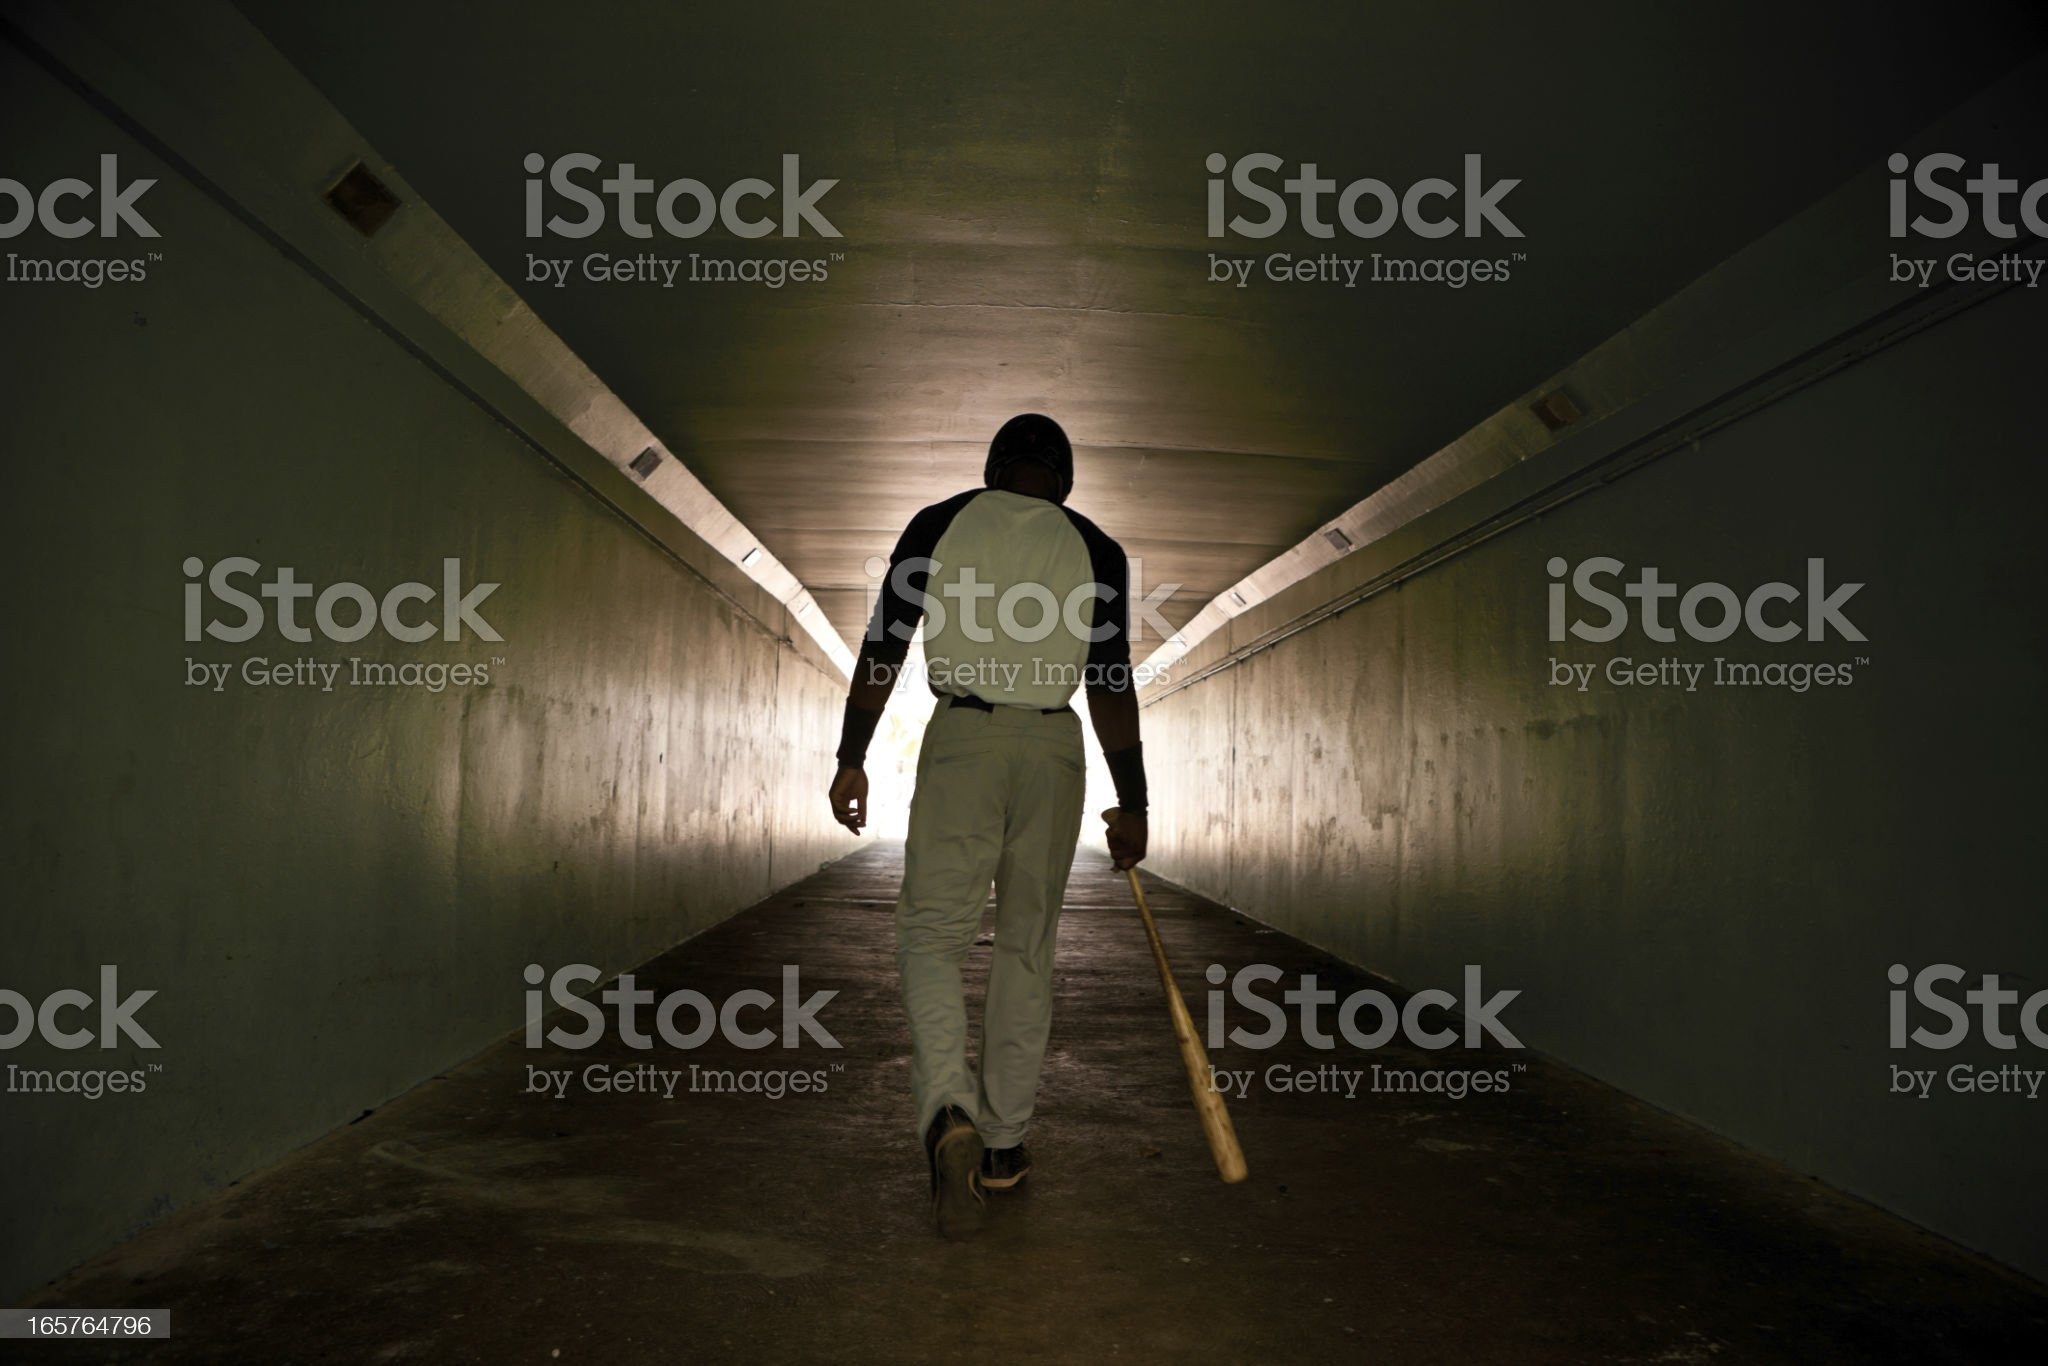 Baseball player walking with bat royalty-free stock photo